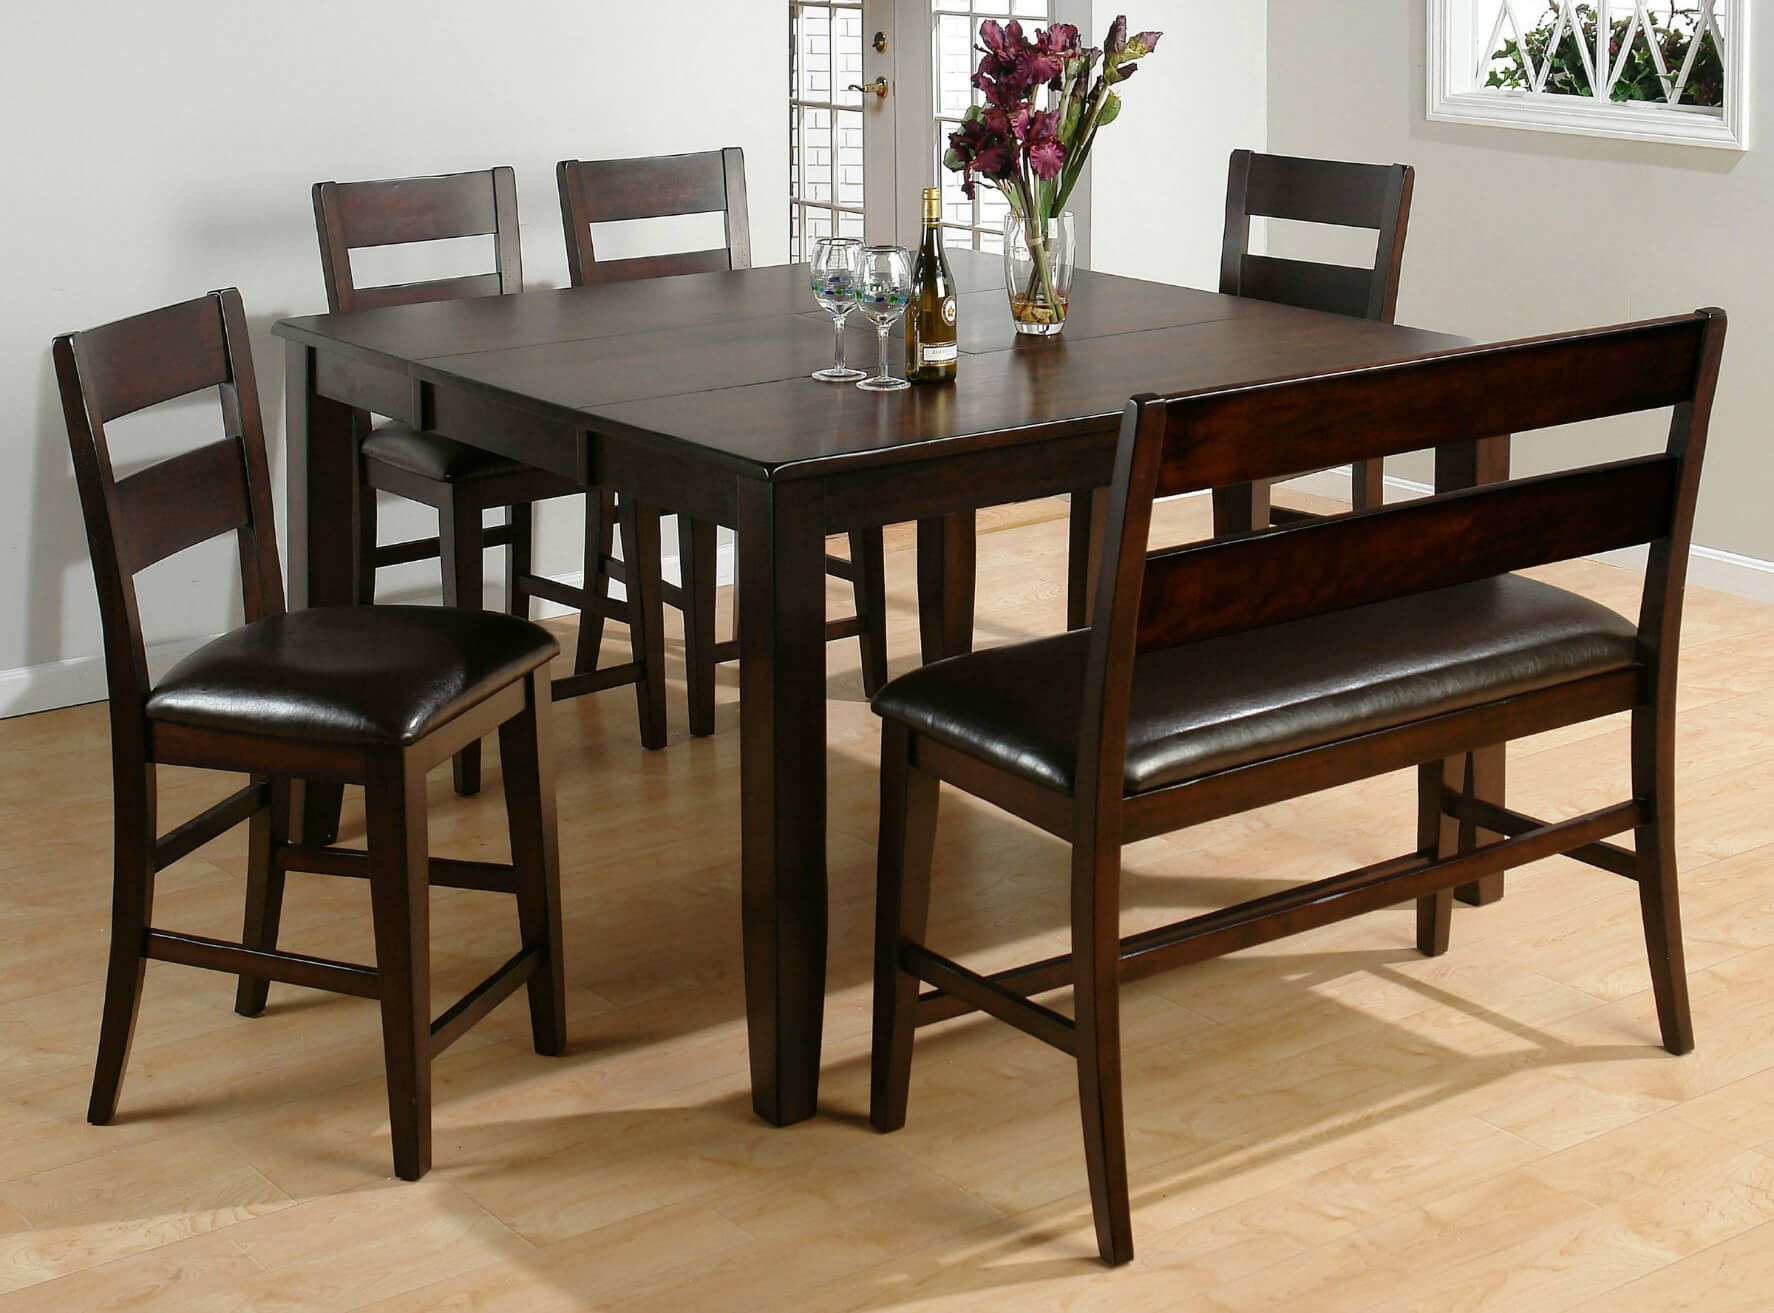 Best ideas about Dining Room Bench . Save or Pin 26 Big & Small Dining Room Sets with Bench Seating Now.